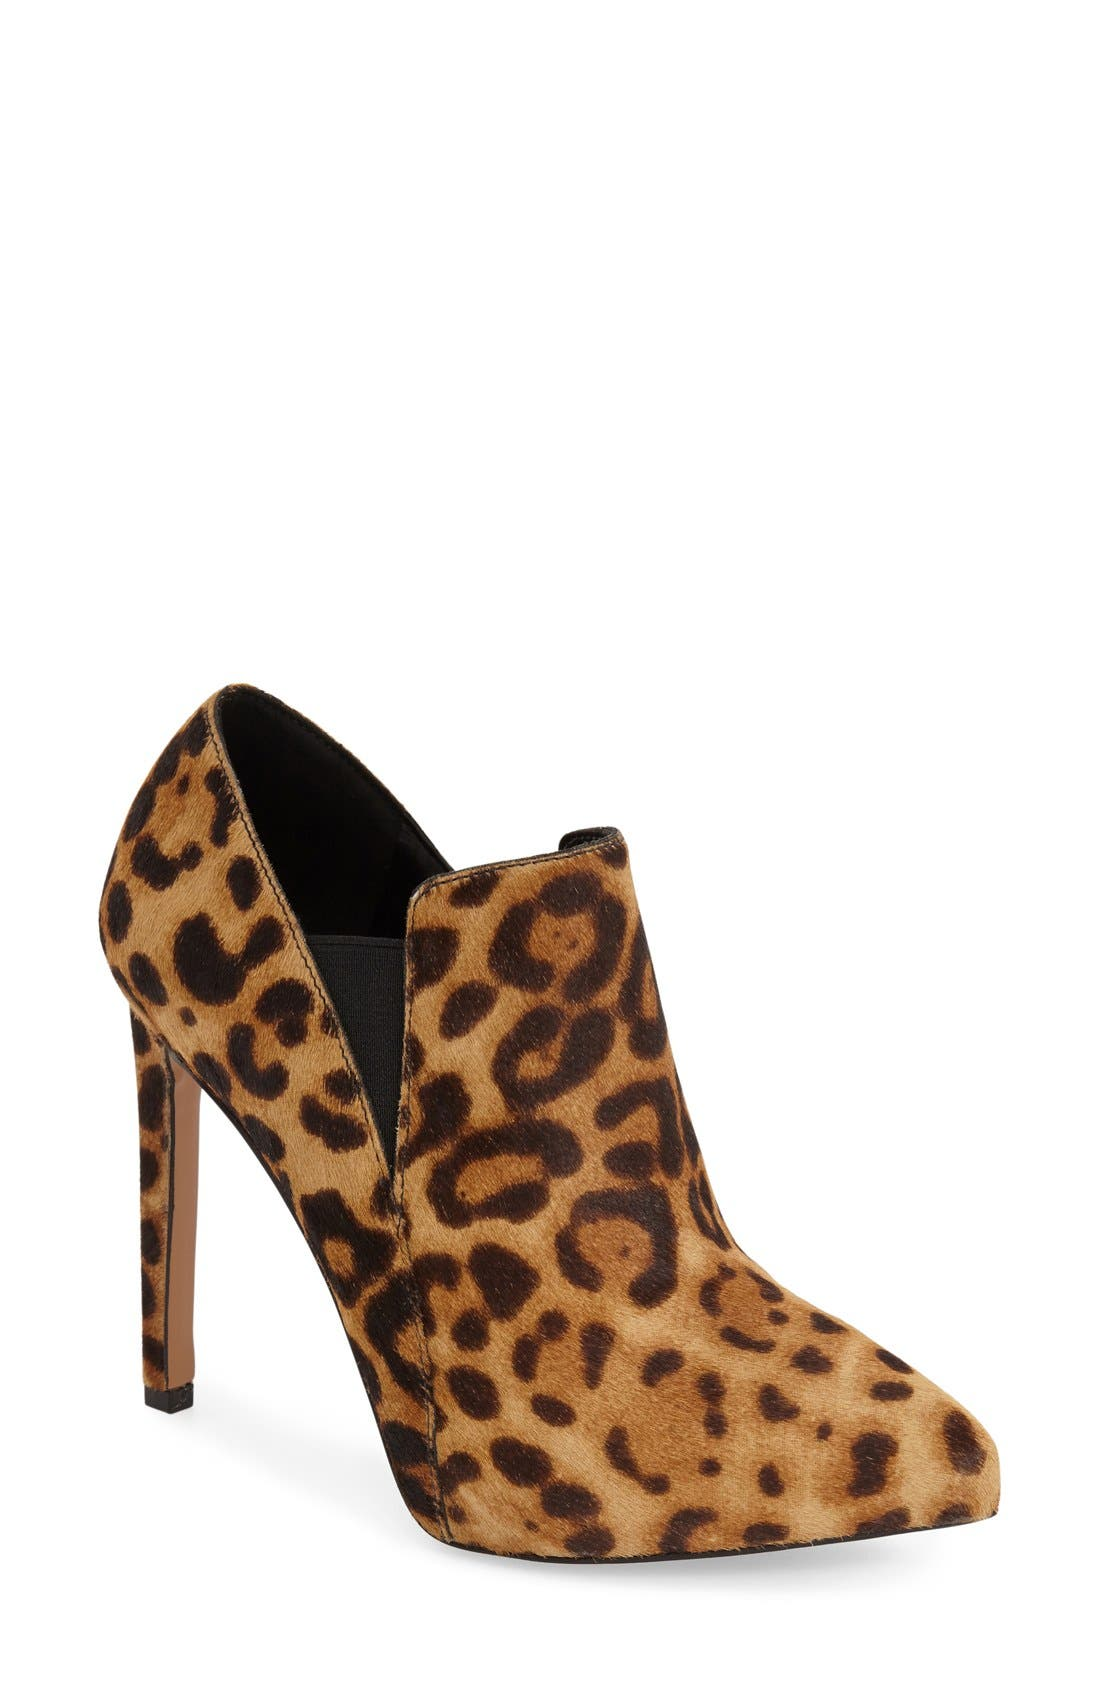 Alternate Image 1 Selected - Nine West 'Leandra' Platform Bootie (Women)